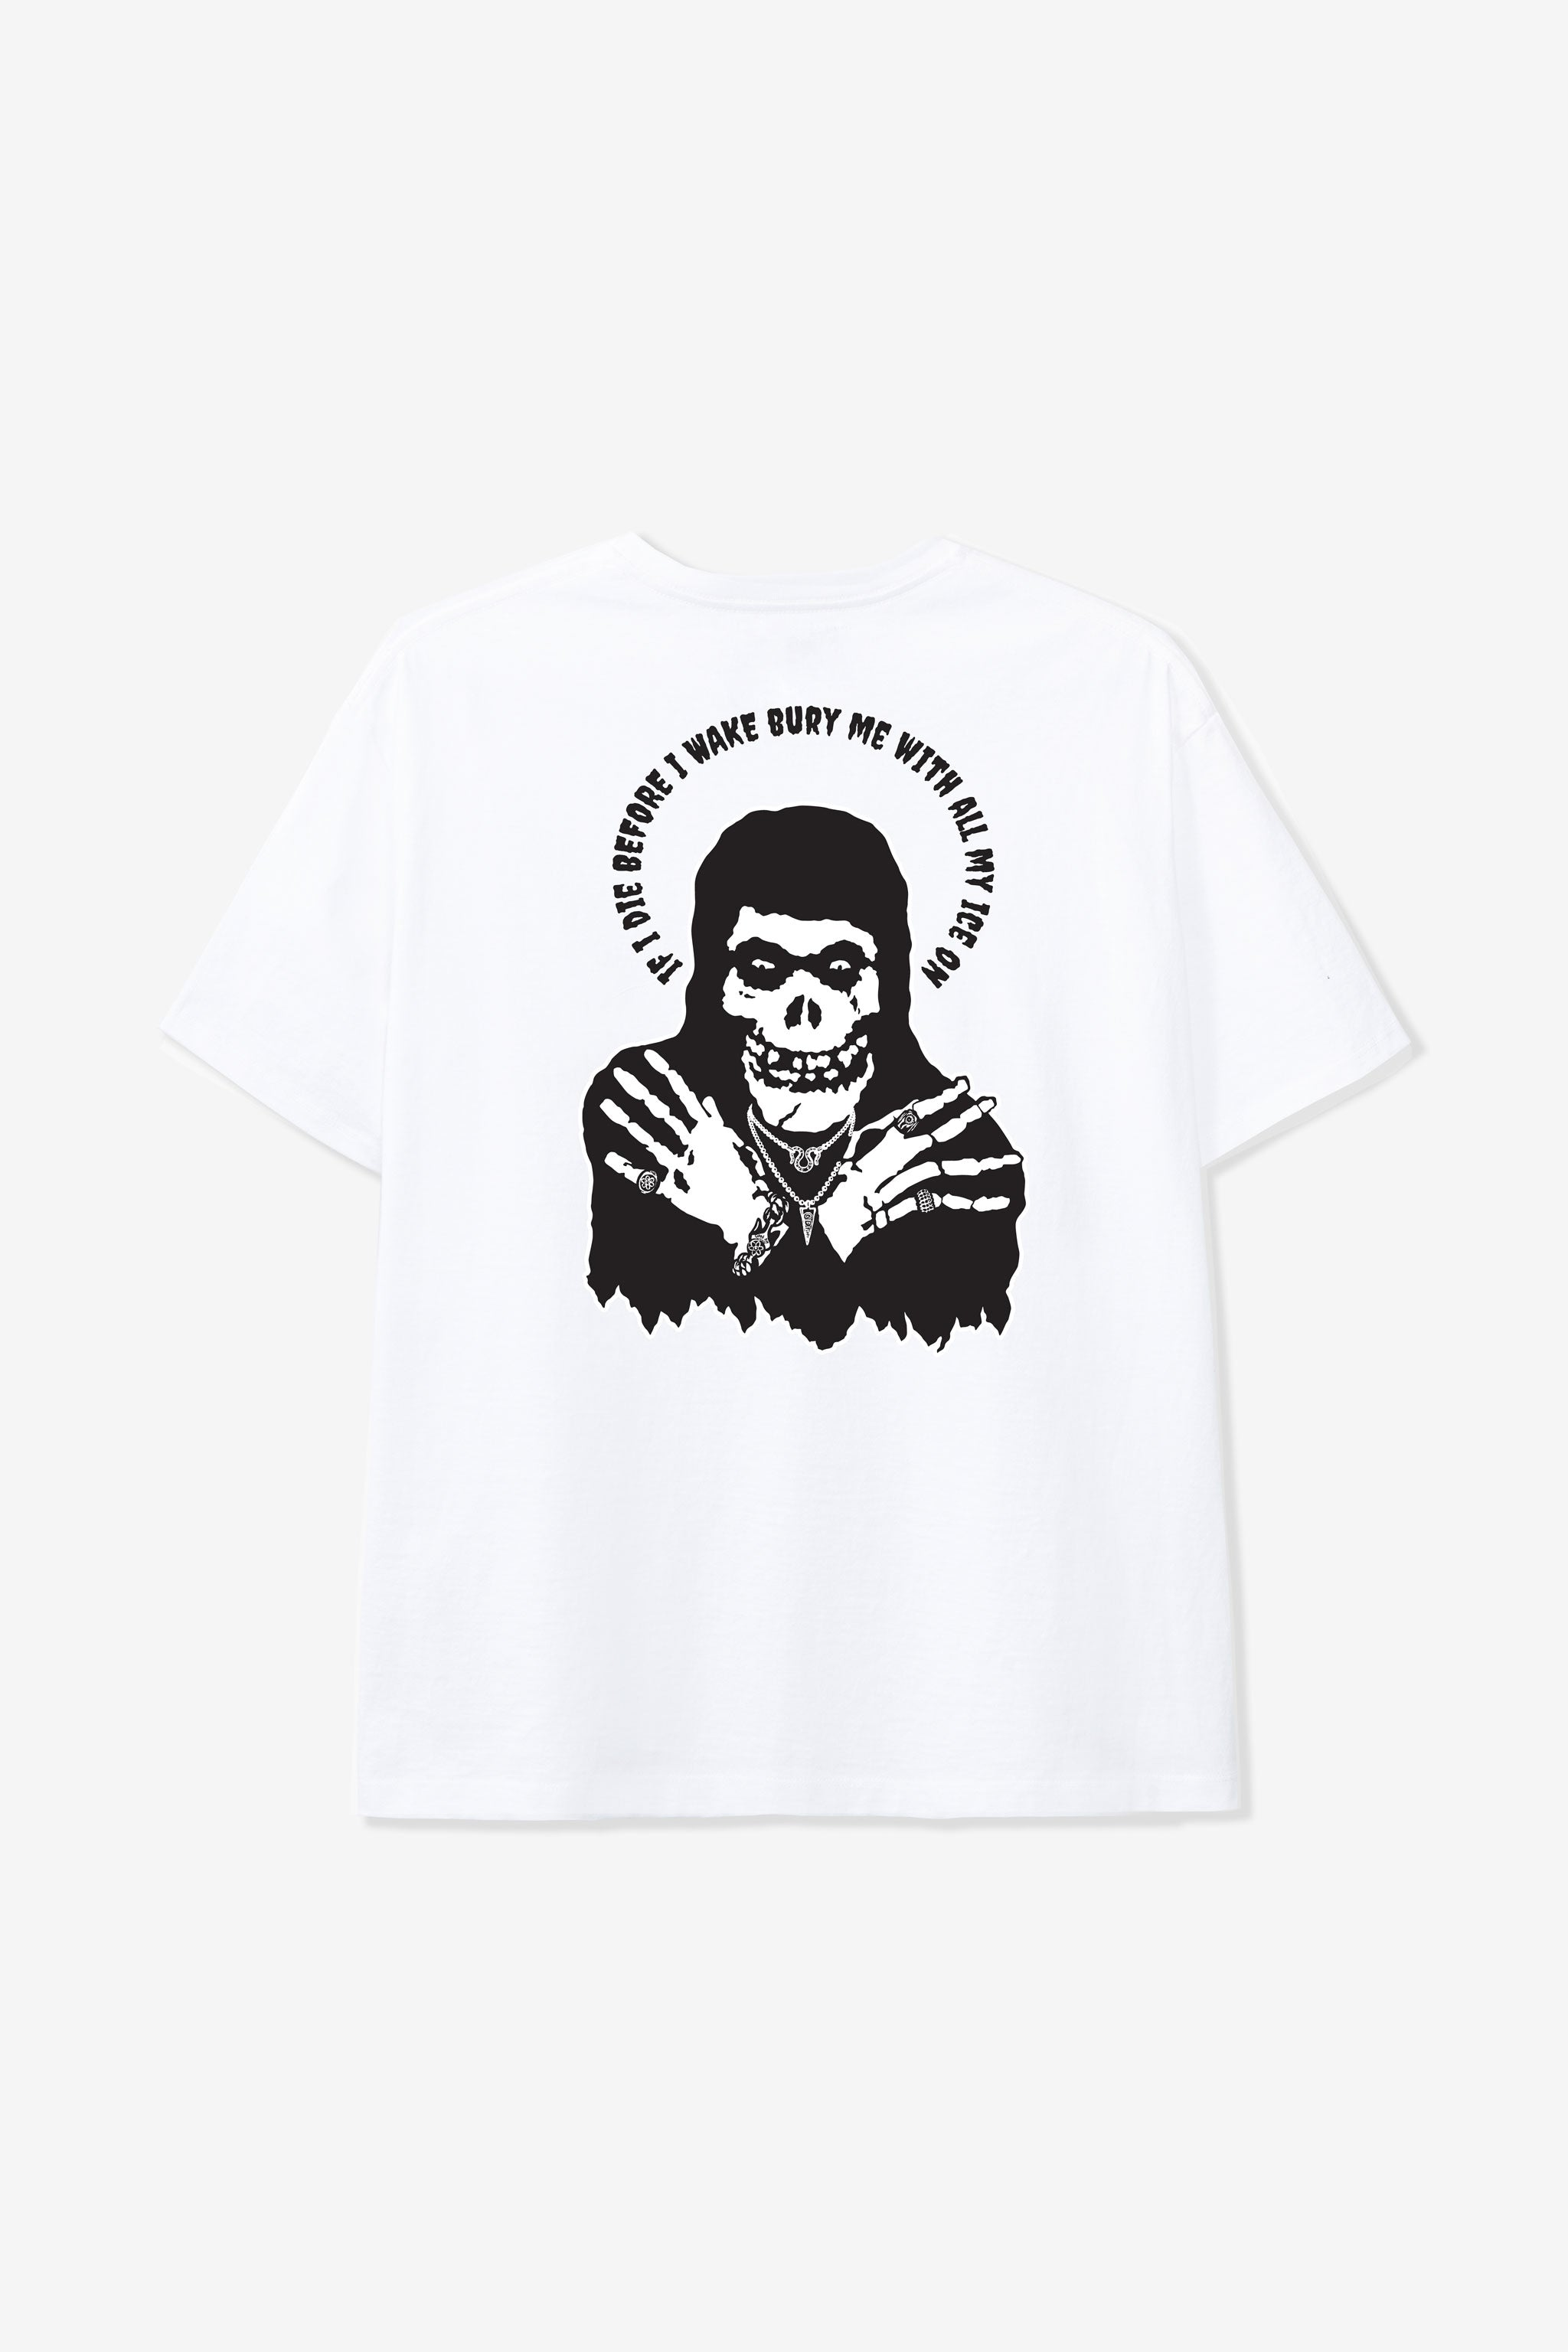 Goodfight x Good Art Hlywd Ice Tee White